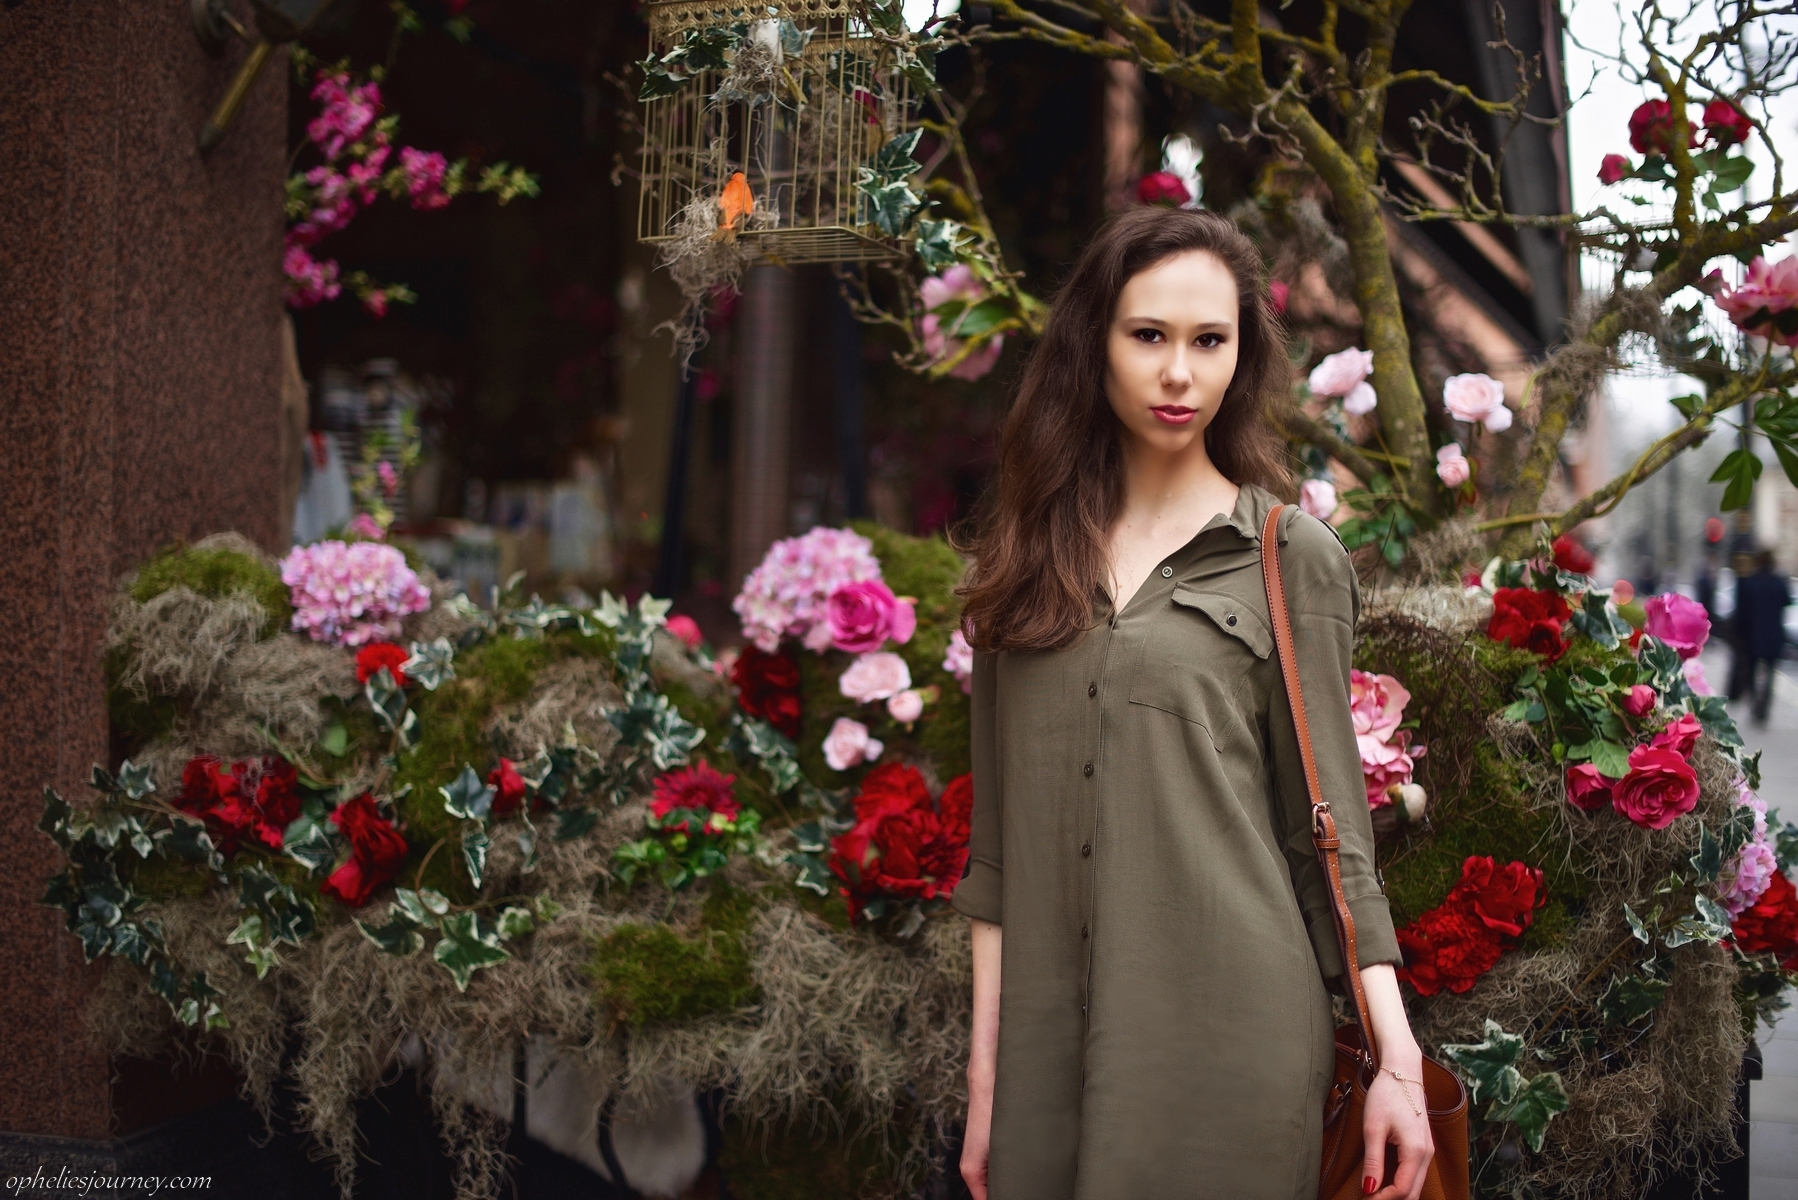 @opheliesjourney's cover photo for 'Un avant-goût de printemps avec mon look Miss Selfridge'